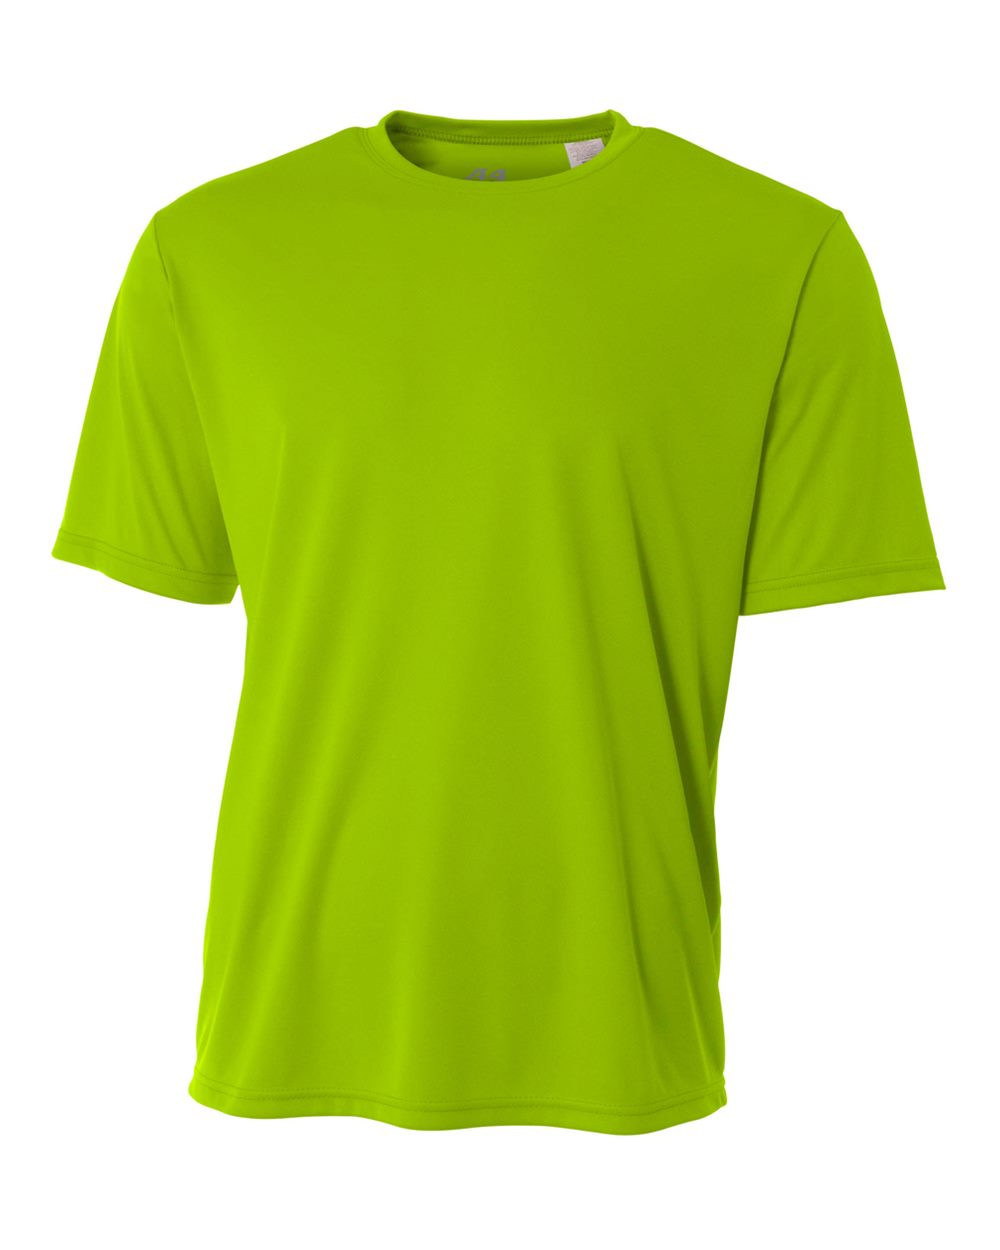 mw-polo-lime-green.jpg